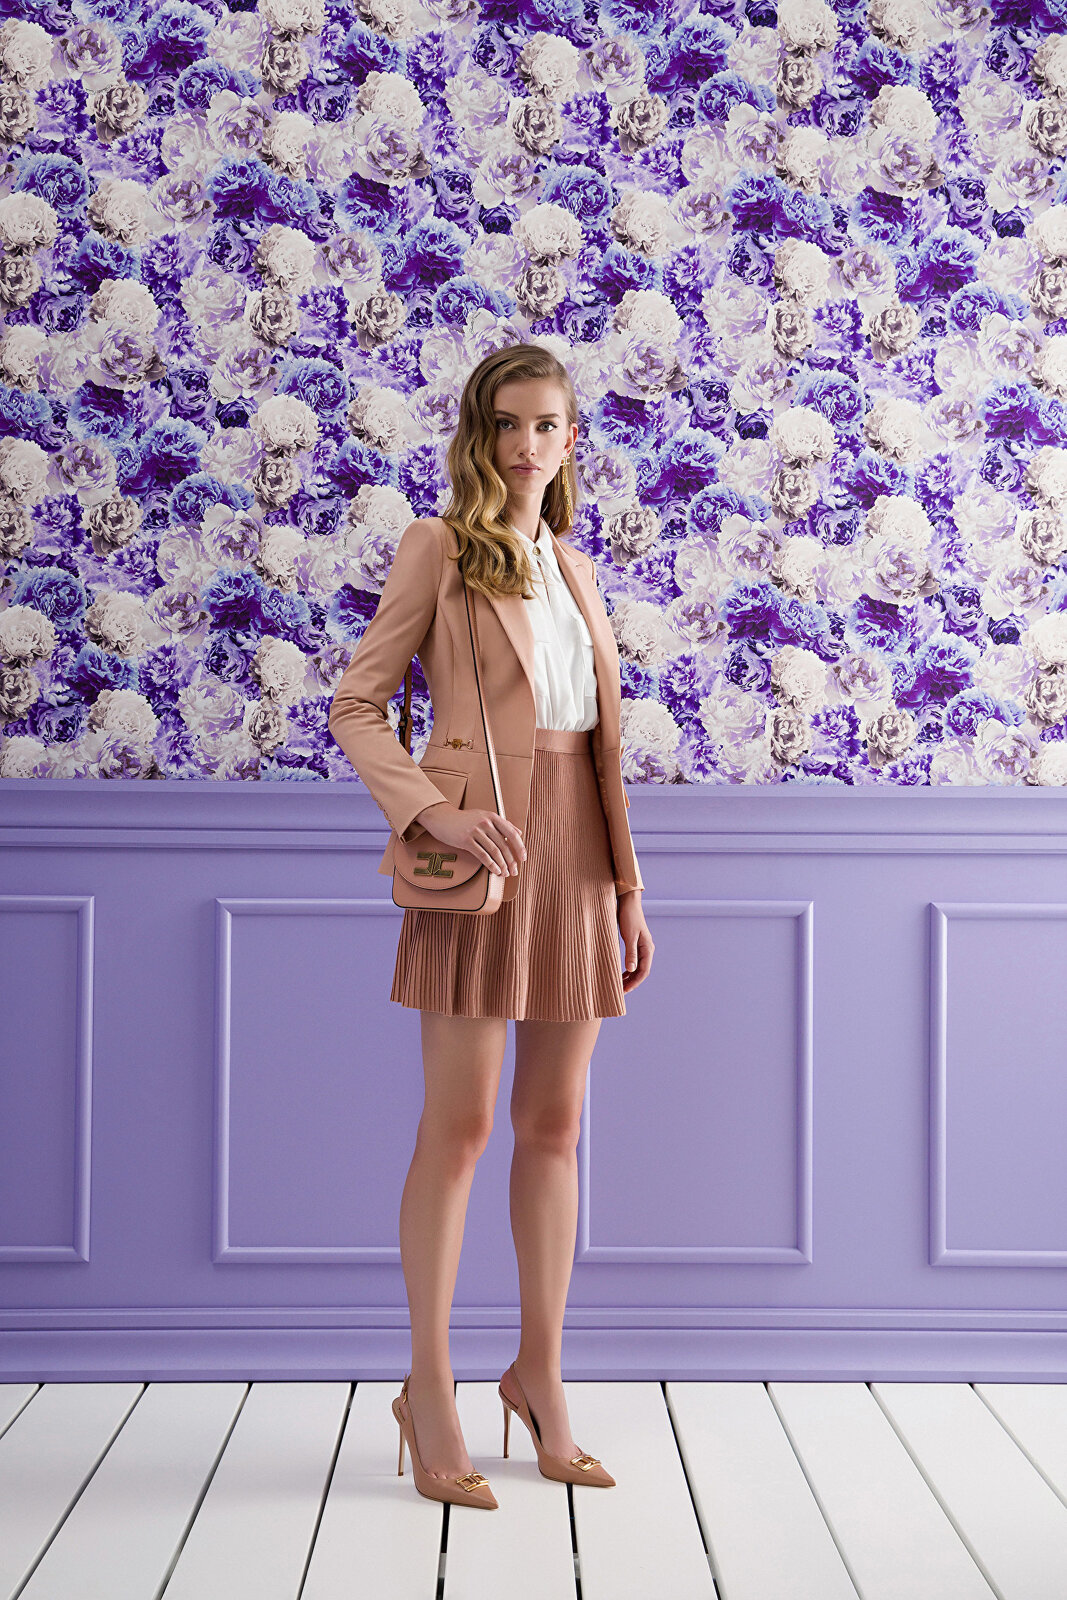 Jacket With Neckline And Light Gold Clamp Accessory - Elisabetta Franchi